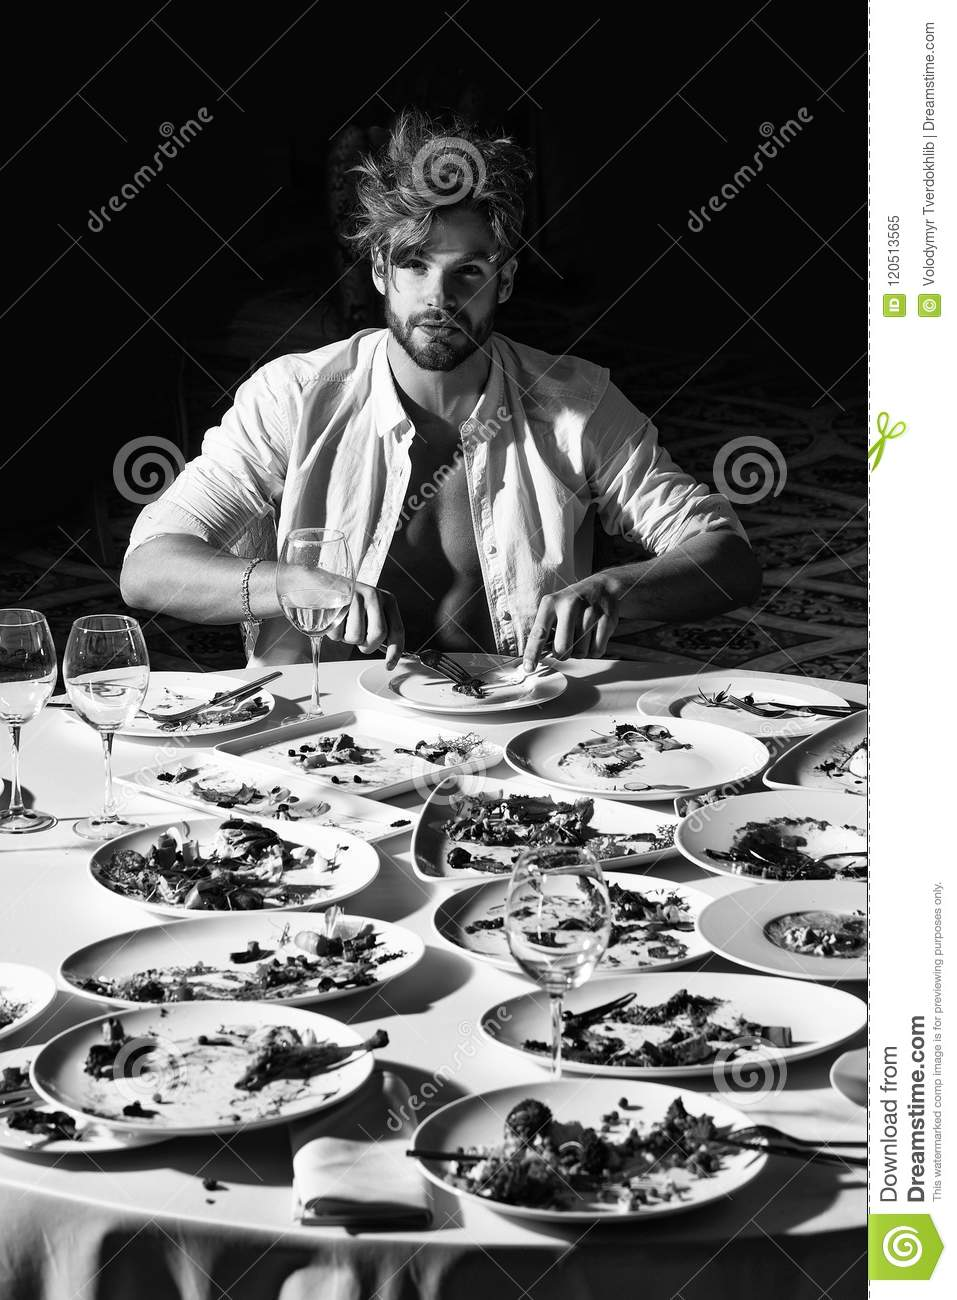 Battles of restaurateurs. Handsome man eats at table